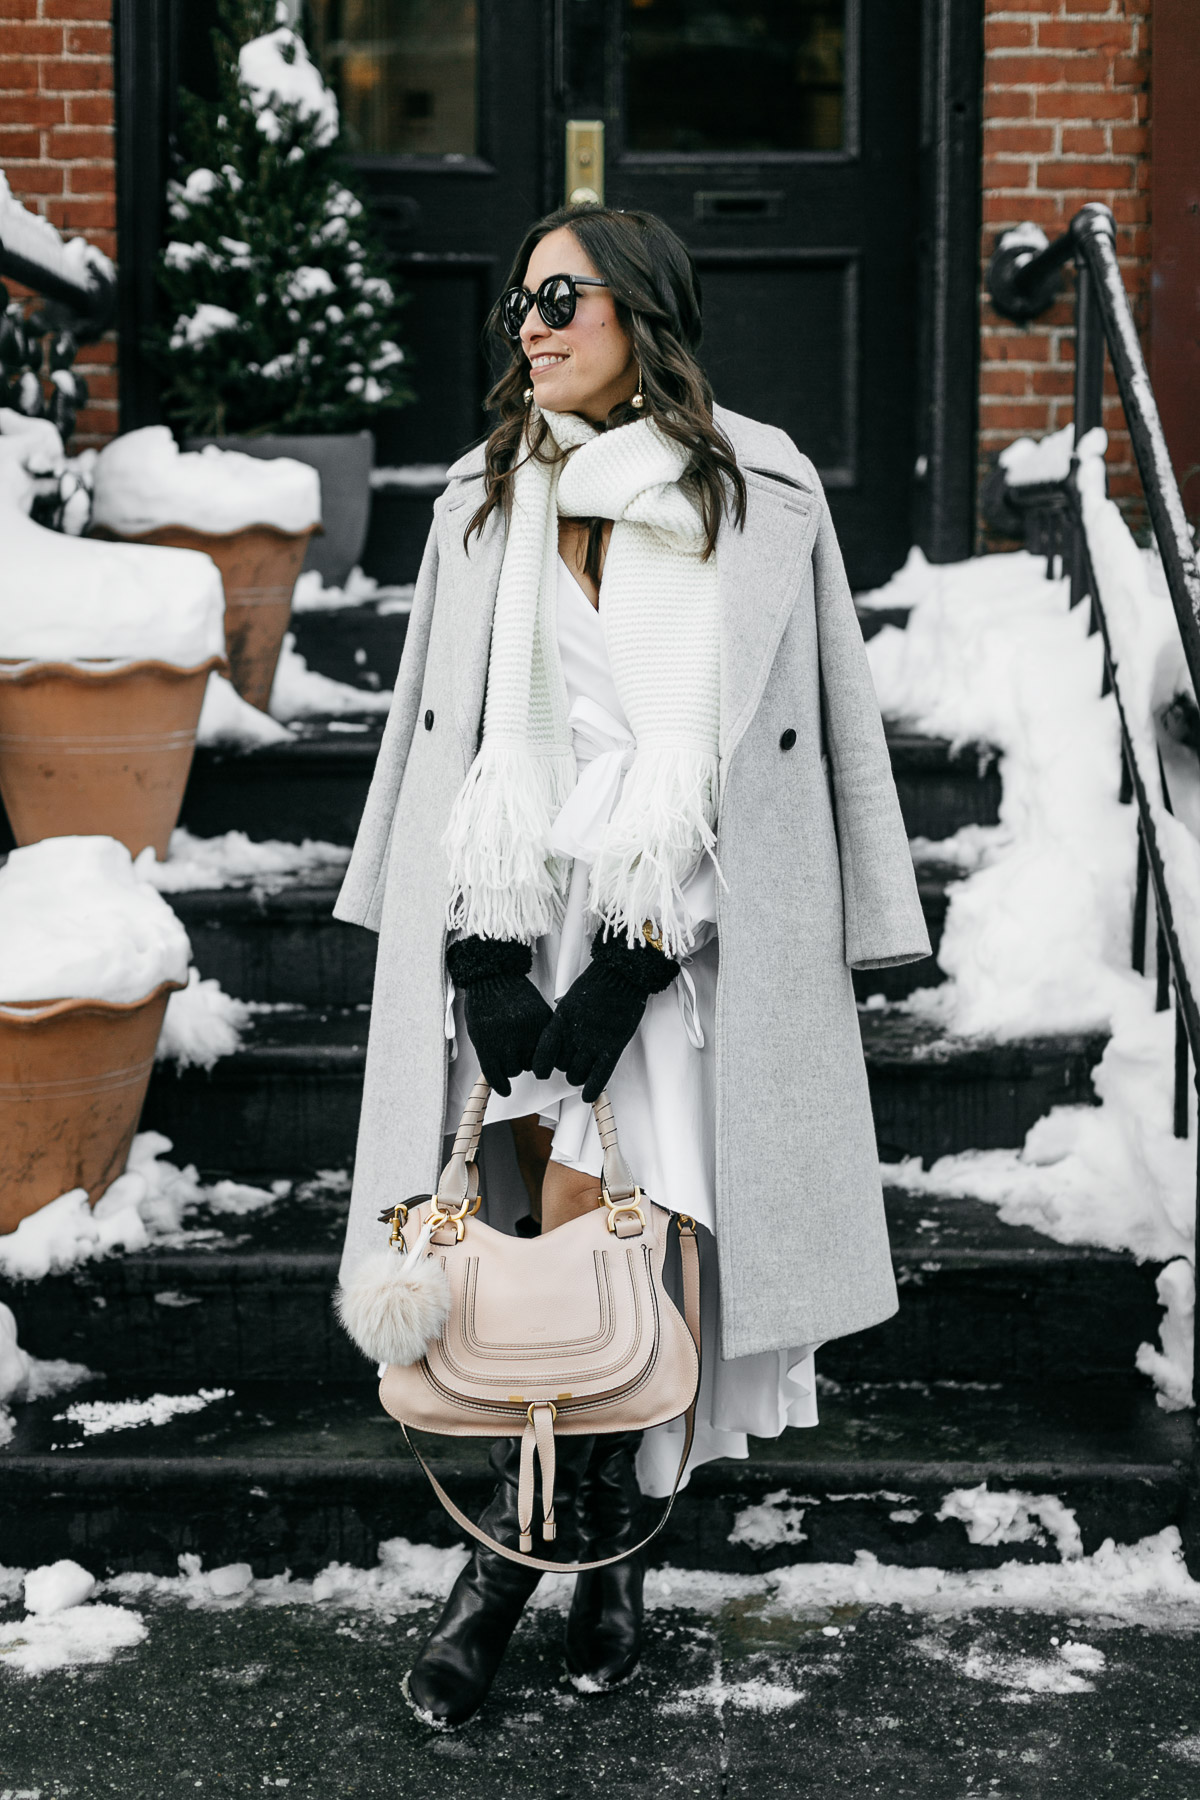 A Glam Lifestyle bloggers wears Carolina Constas high low white shirt dress for NYFW street style while carrying her Chloe Marcie bag and Club Monaco coat and white fringed scarf in Greenwich Village